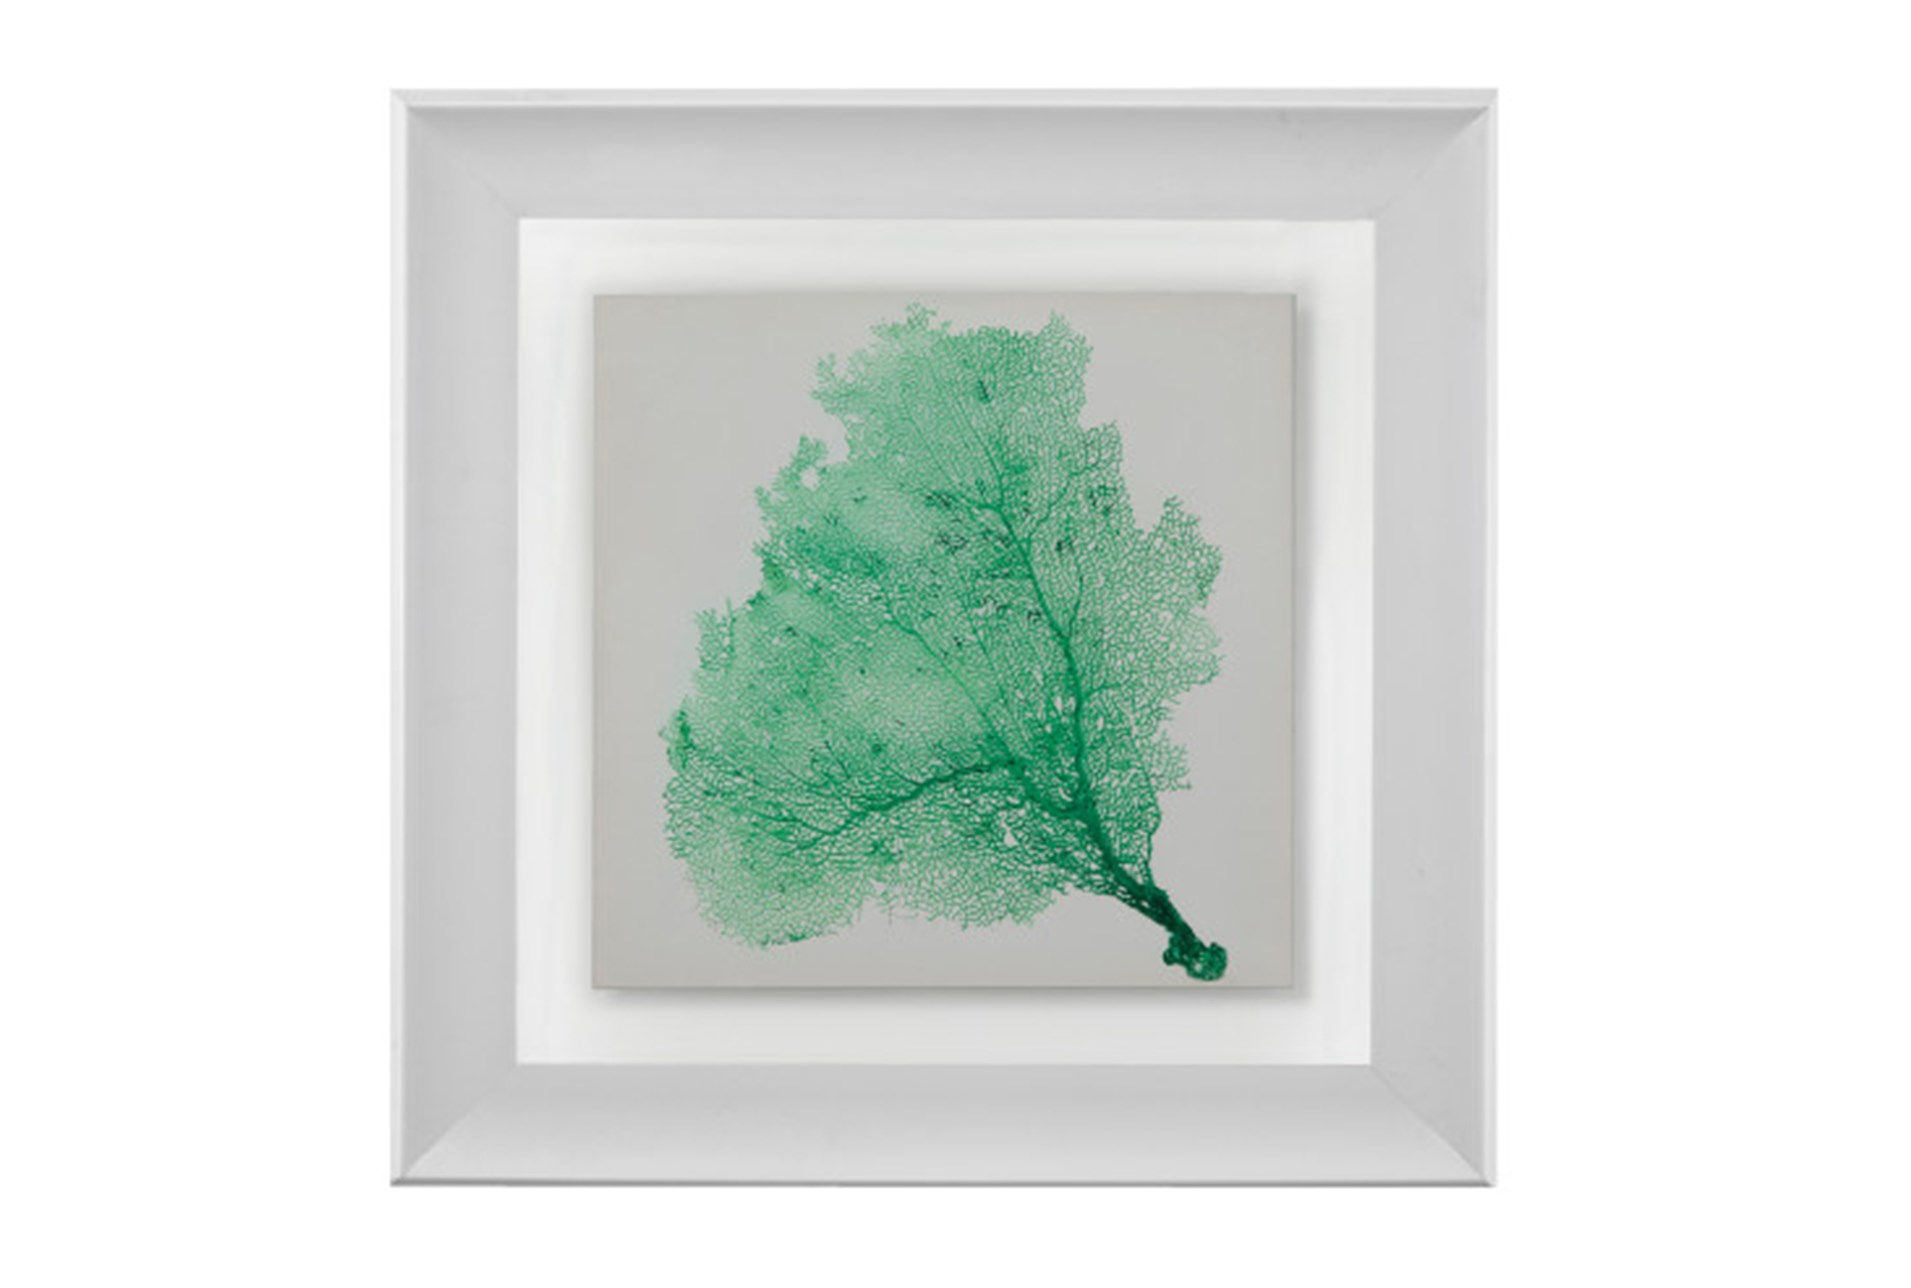 Picture Sea Fan Emerald Qty 1 Has Been Successfully Added To Your Cart